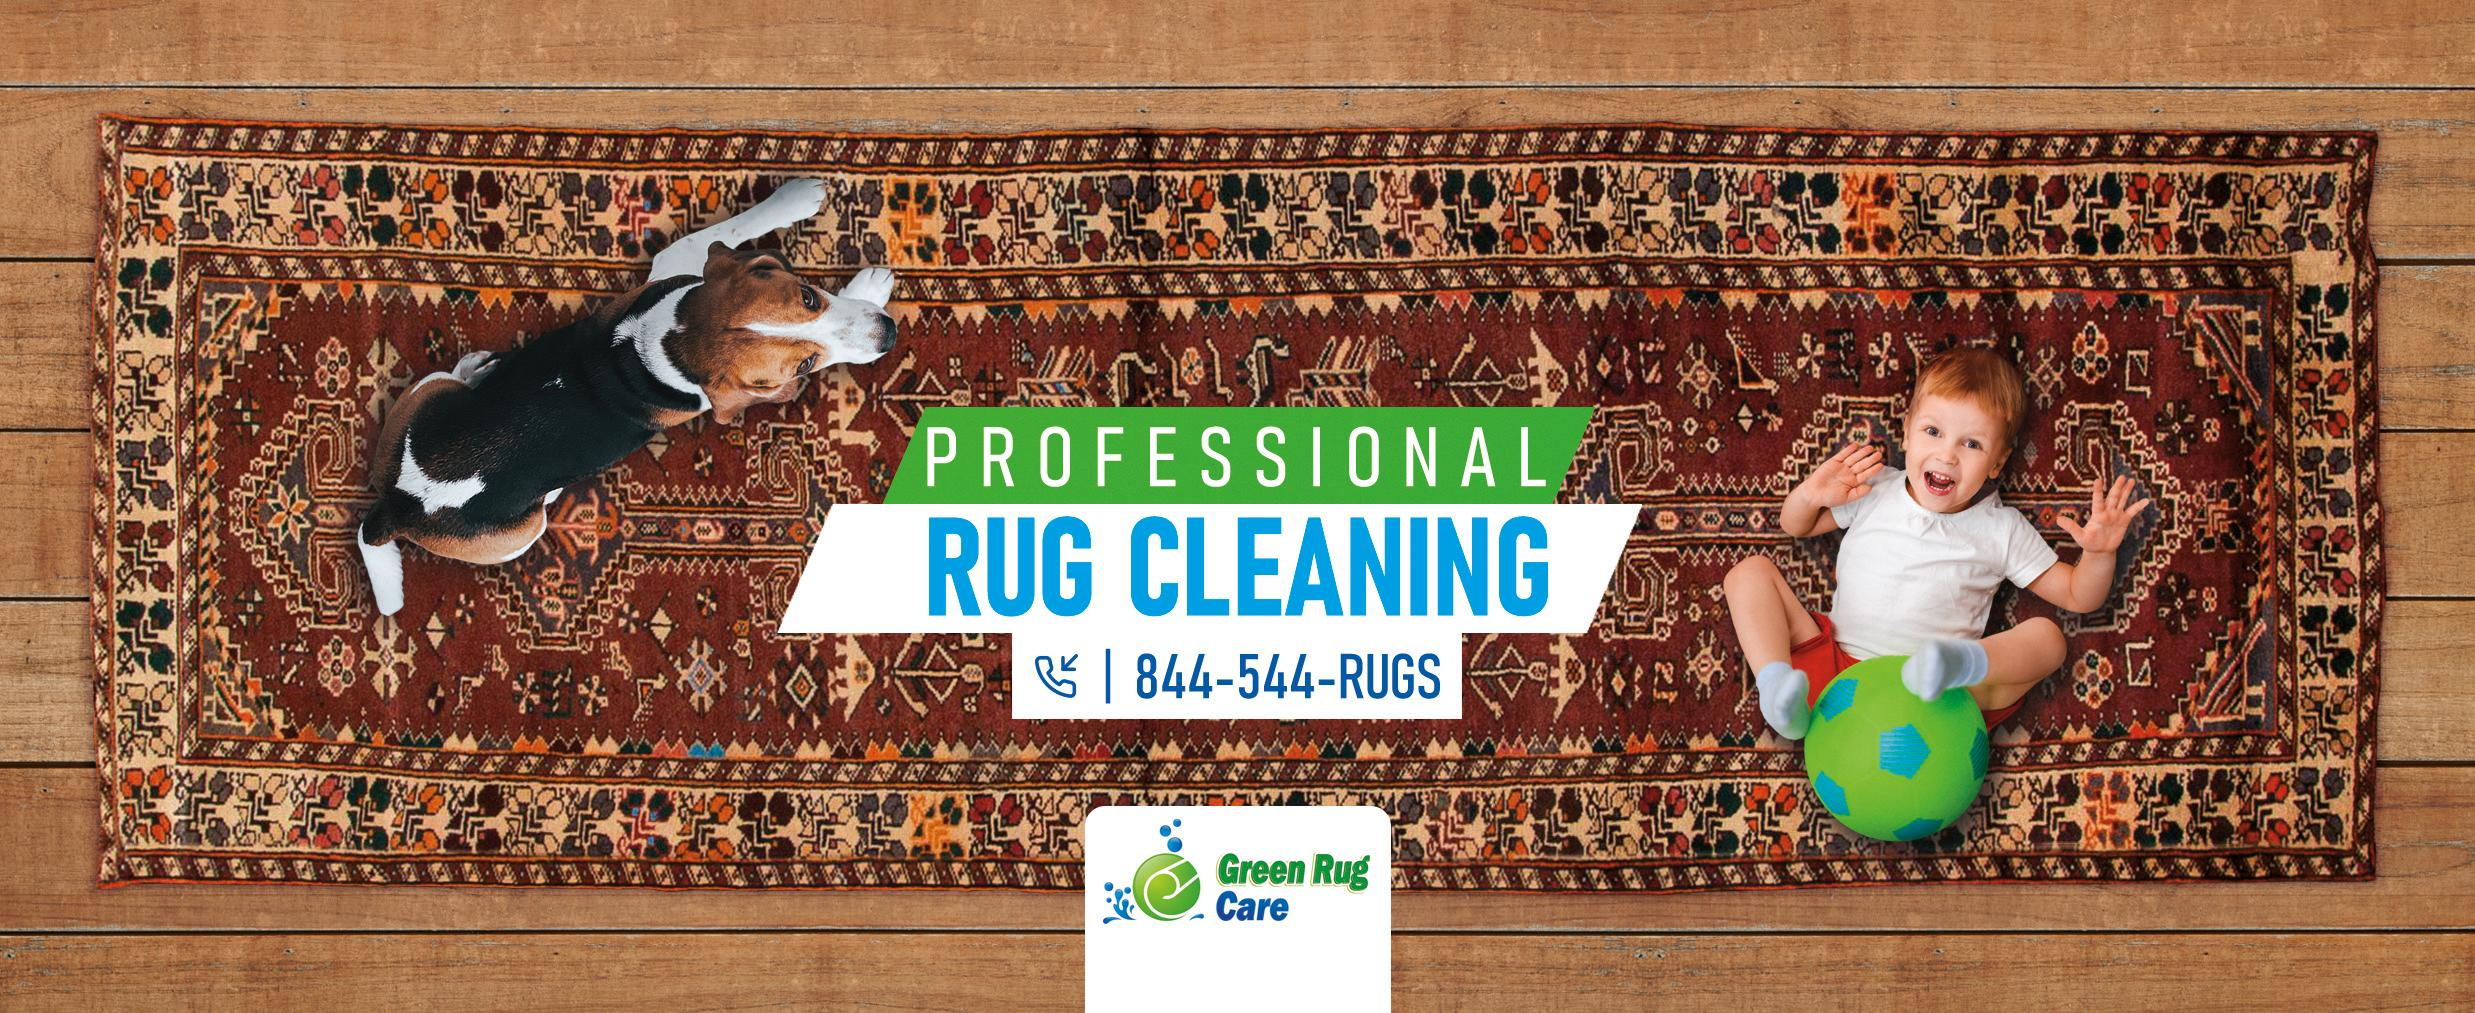 Green Rug Care, Rug Cleaning Servises